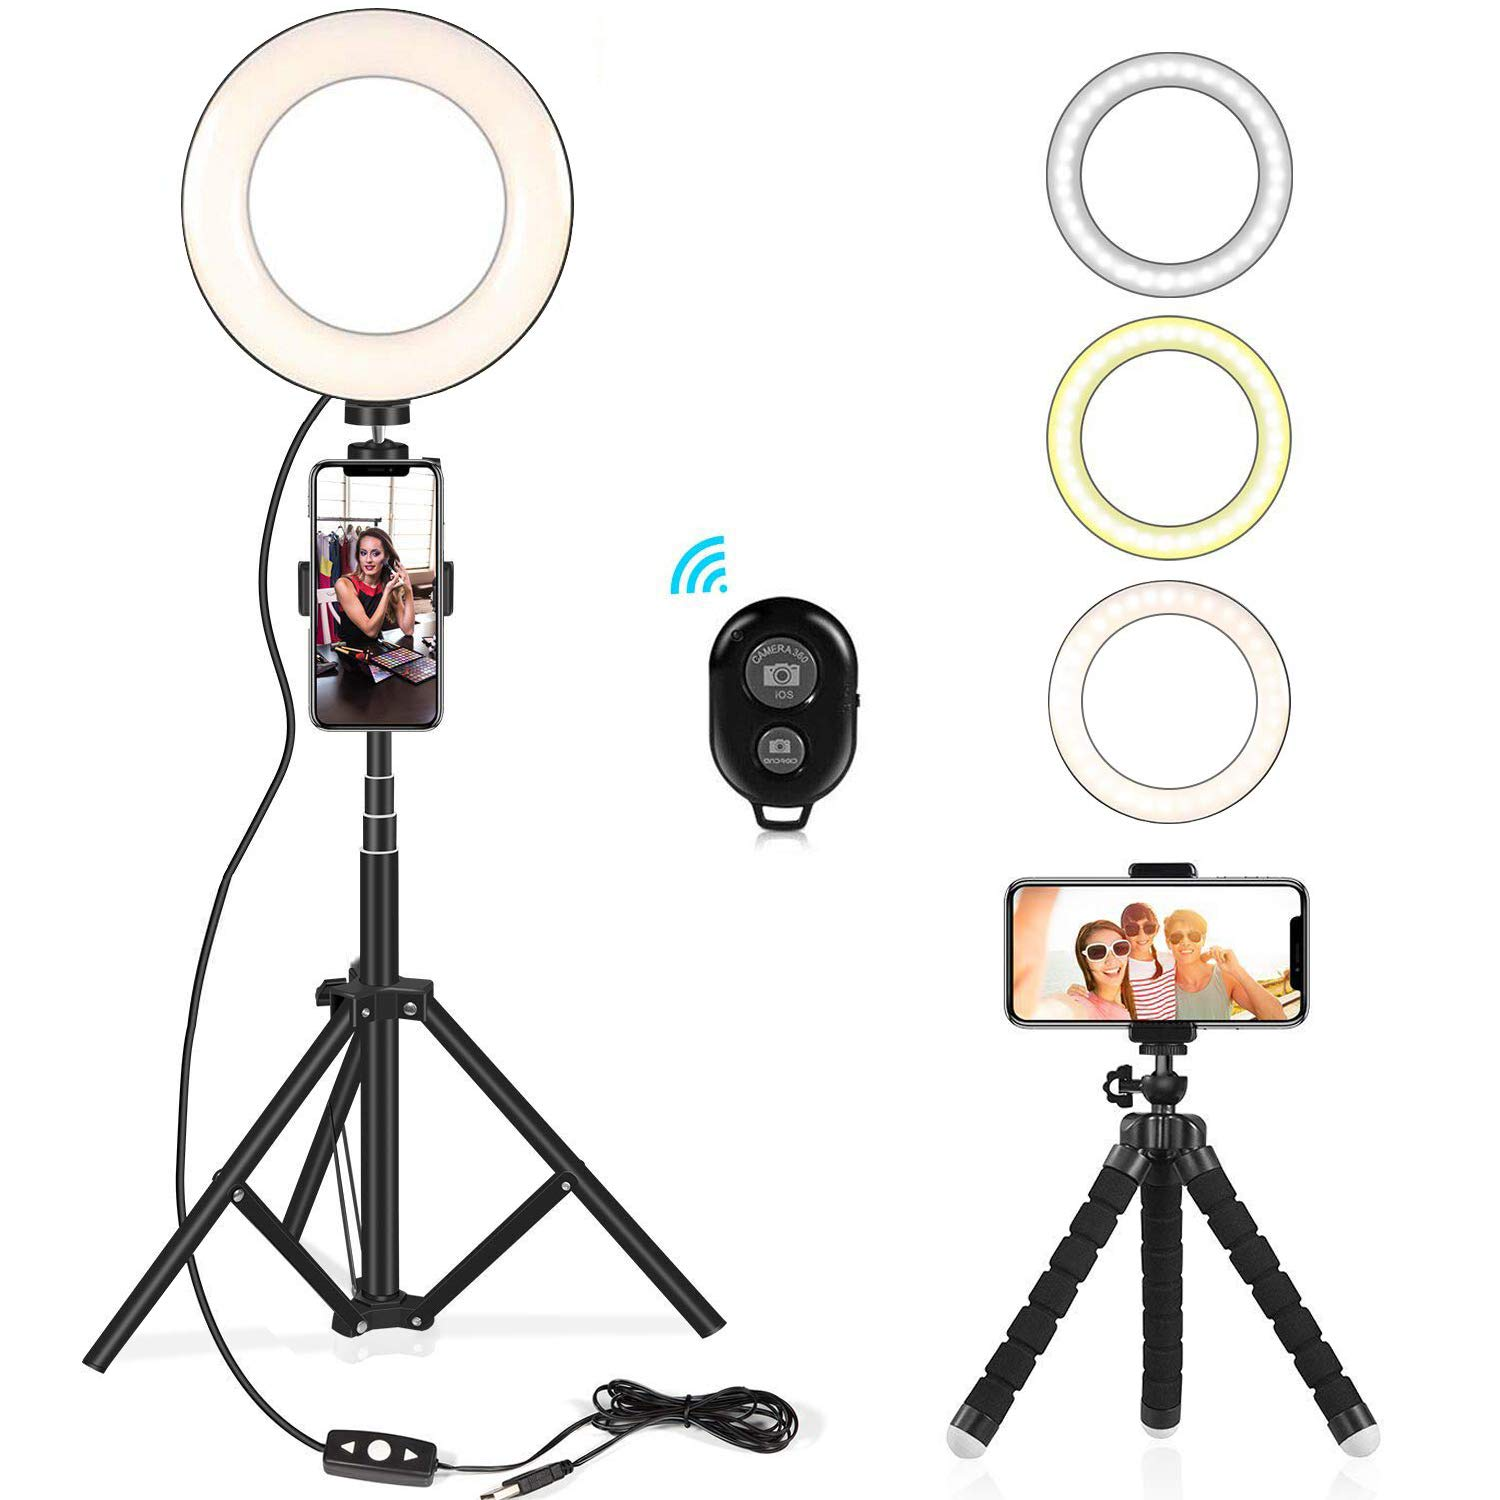 Selfie Ring Light Kit 6.5'' with Extendable Light Stand, Flexible Tripod Stand & Cell Phone Holder for YouTube Video Shooting/Live Stream/Makeup/Vlogs/Desktop with 3 Light Modes for iPhone, Android